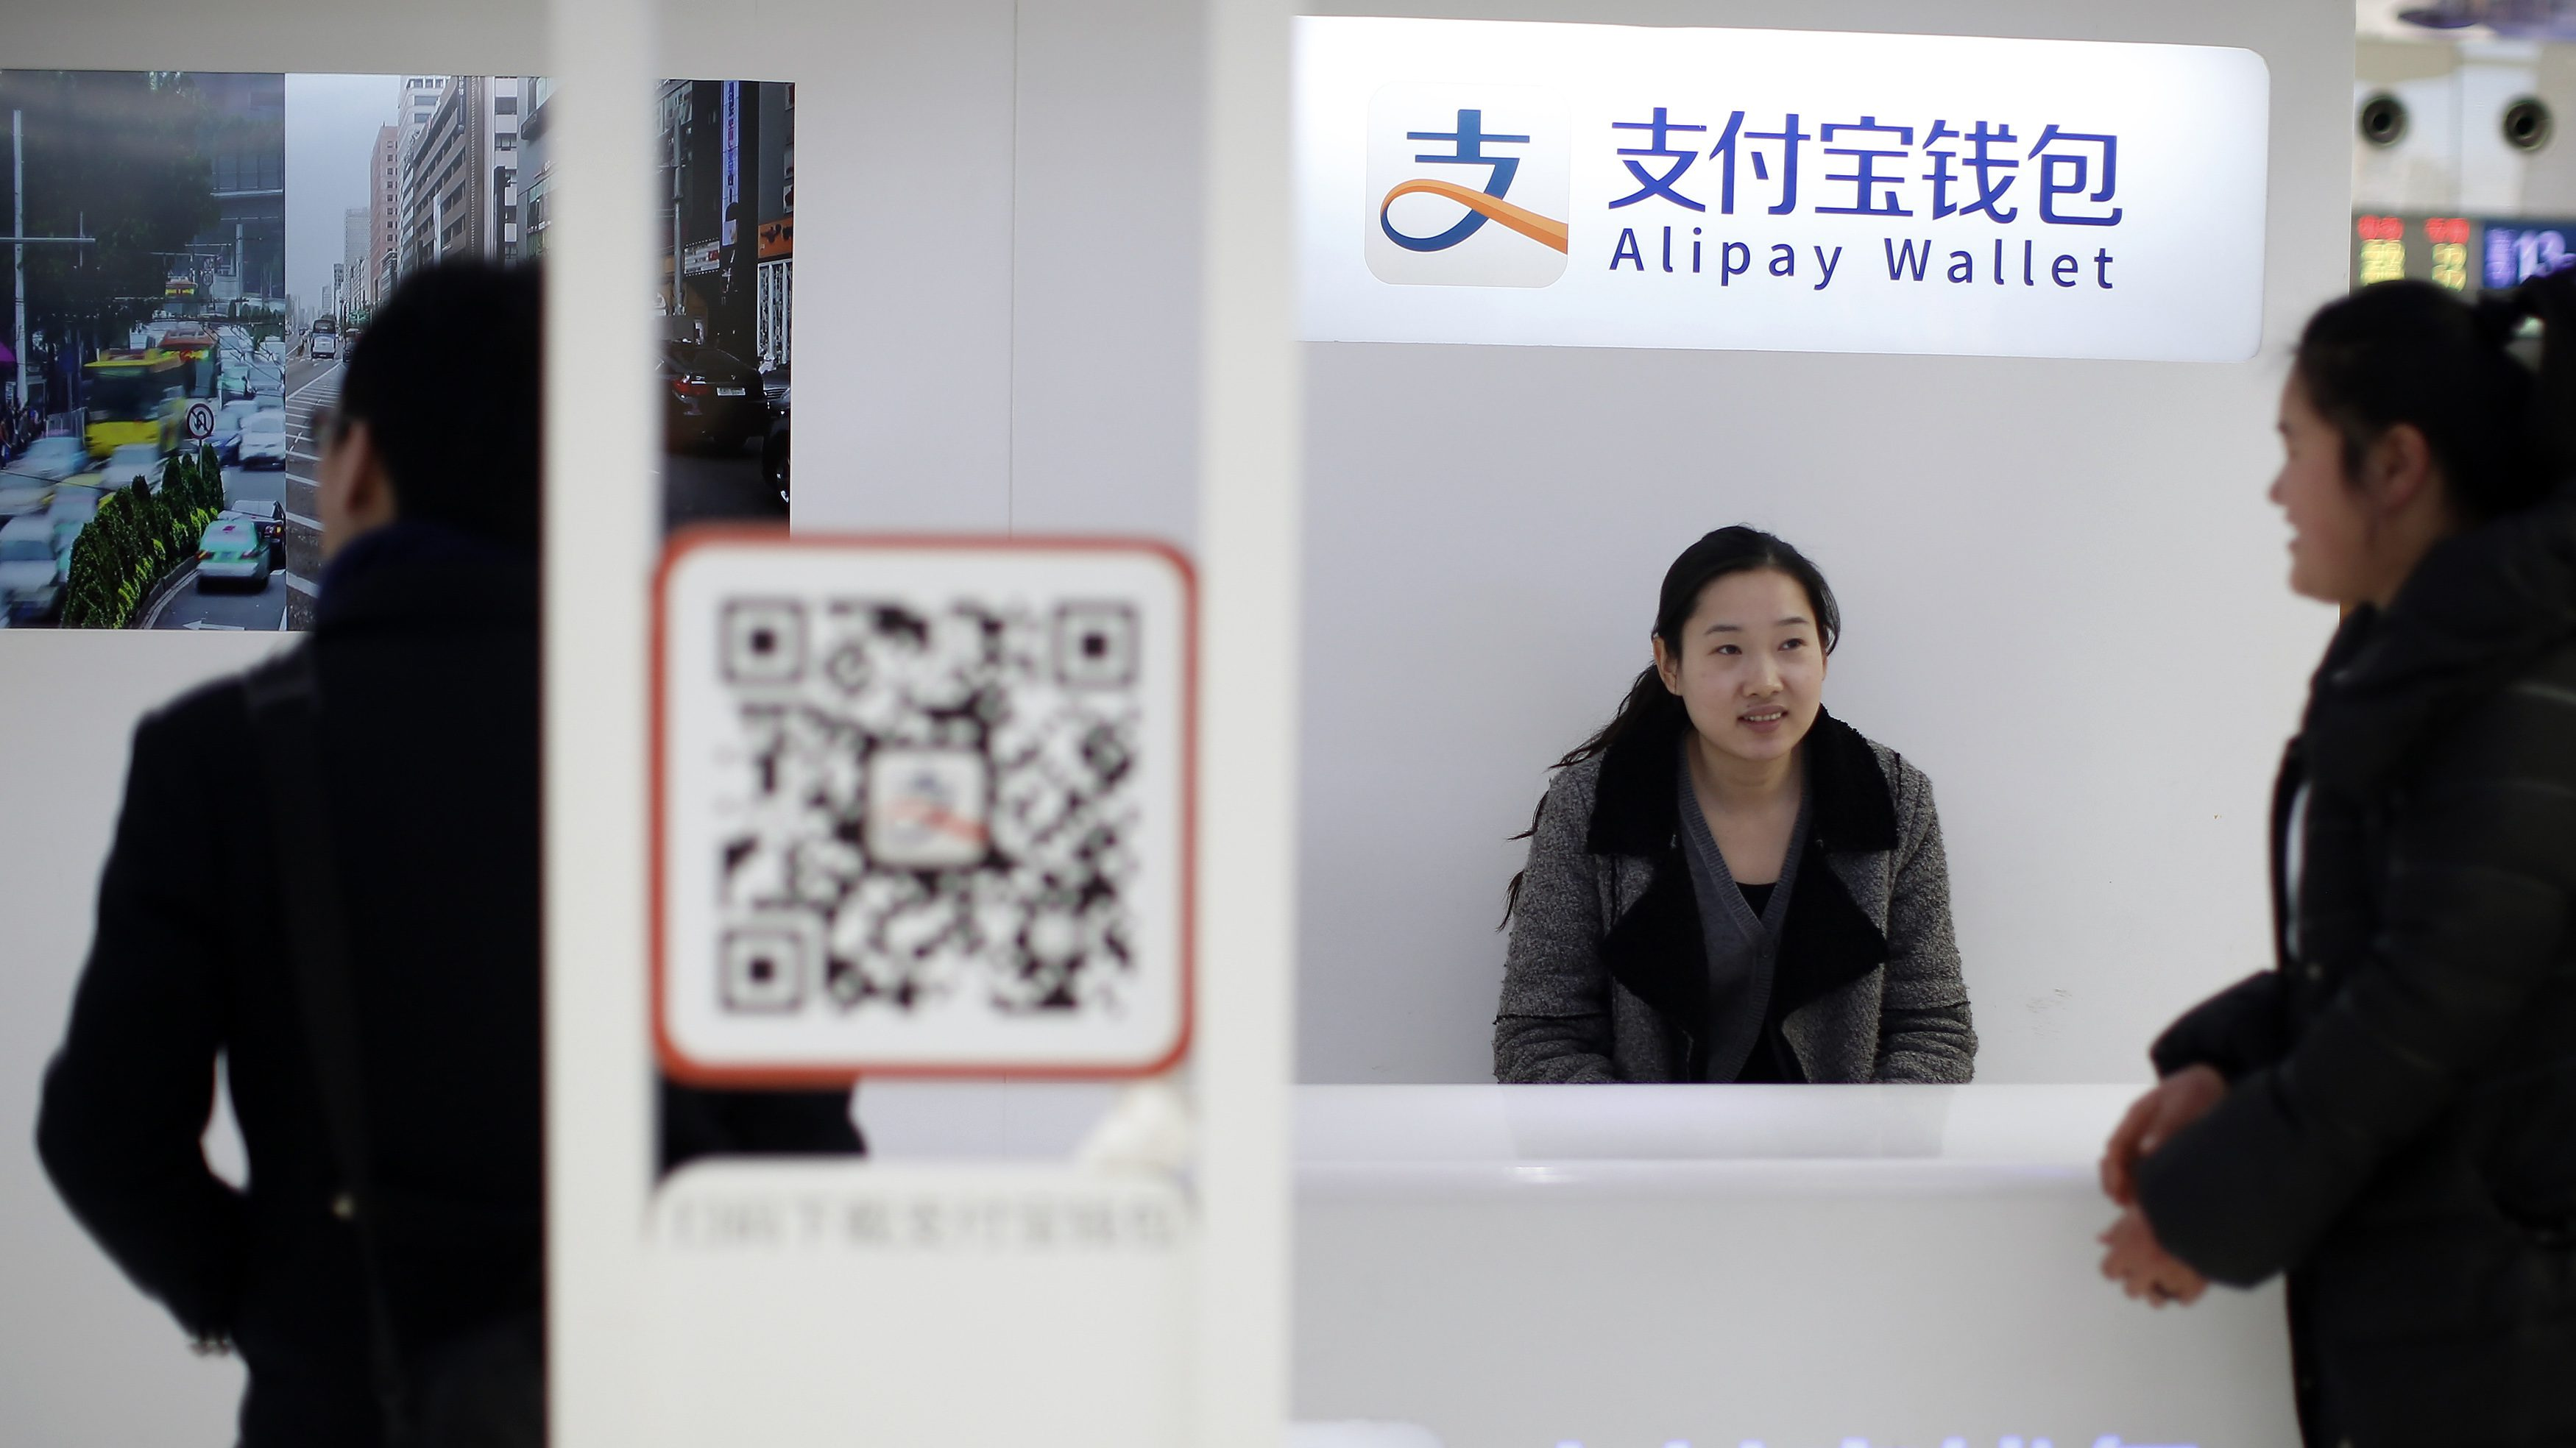 "A sales assistant sits behind and under Alipay logos at a train station in Shanghai, February 9, 2015. Ant Financial Services Group, an affiliate of Chinese e-commerce titan Alibaba, is in negotiations for funding that have reached a ""critical stage"" and value the company at $30 billion, news magazine Caixin reported on Monday. Ant Financial runs Alipay, China's most widely used online payment platform which is seen as a crucial part of Alibaba's business."